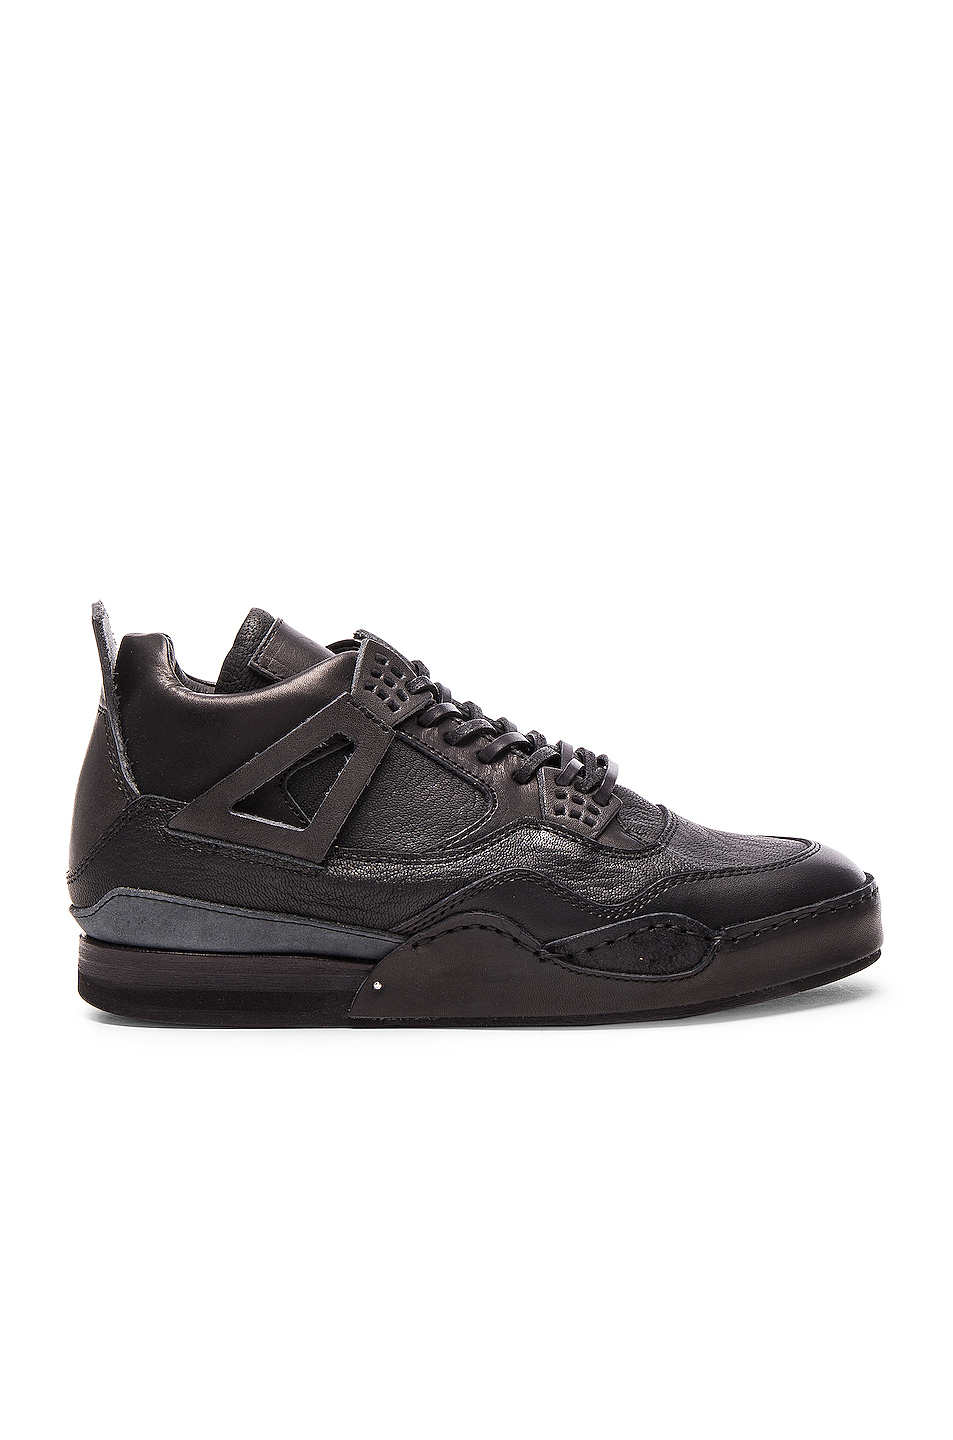 Hender Scheme Manual Industrial Product 10 in Black